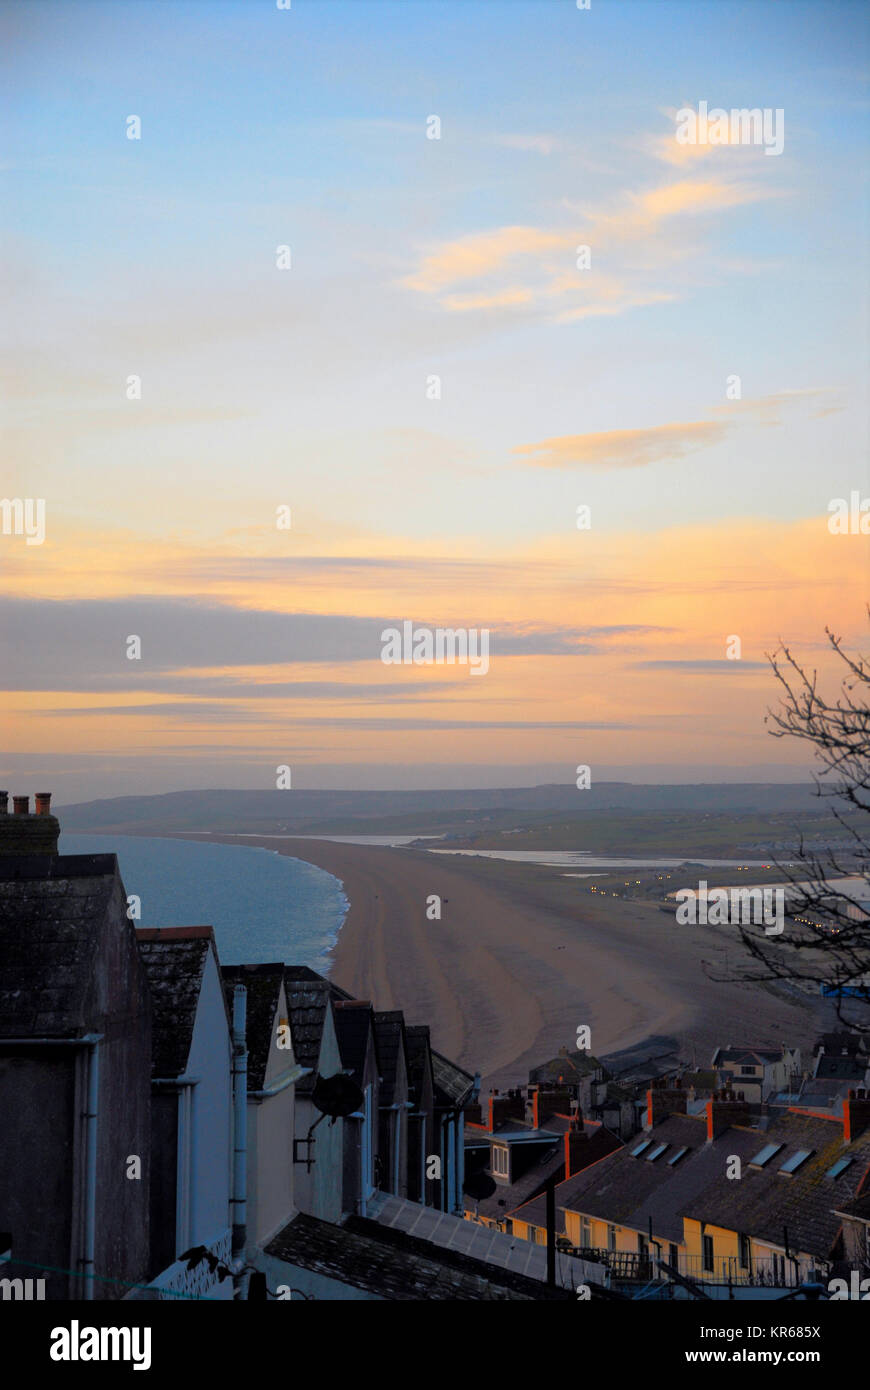 Portland, Dorset. 19th December 2017 - Candy-floss clouds over Chesil Beach at sunset, seen from Fortuneswell on - Stock Image